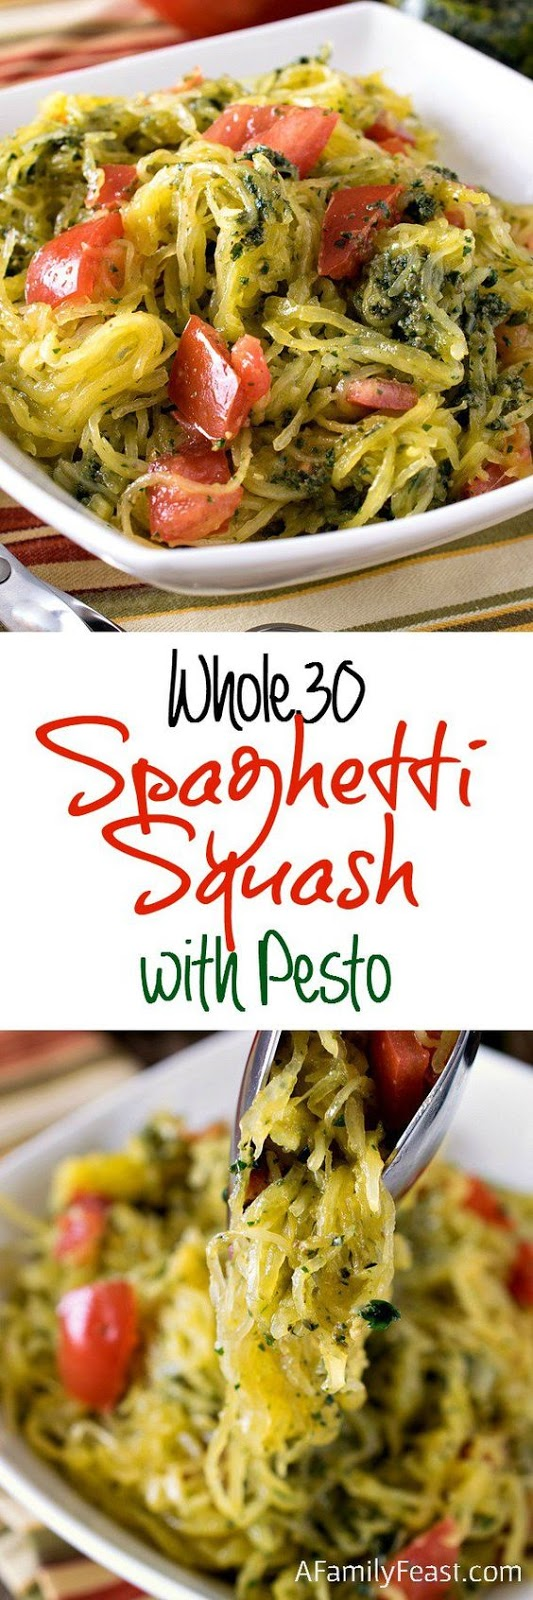 whole30 spaghetti squash with pesto